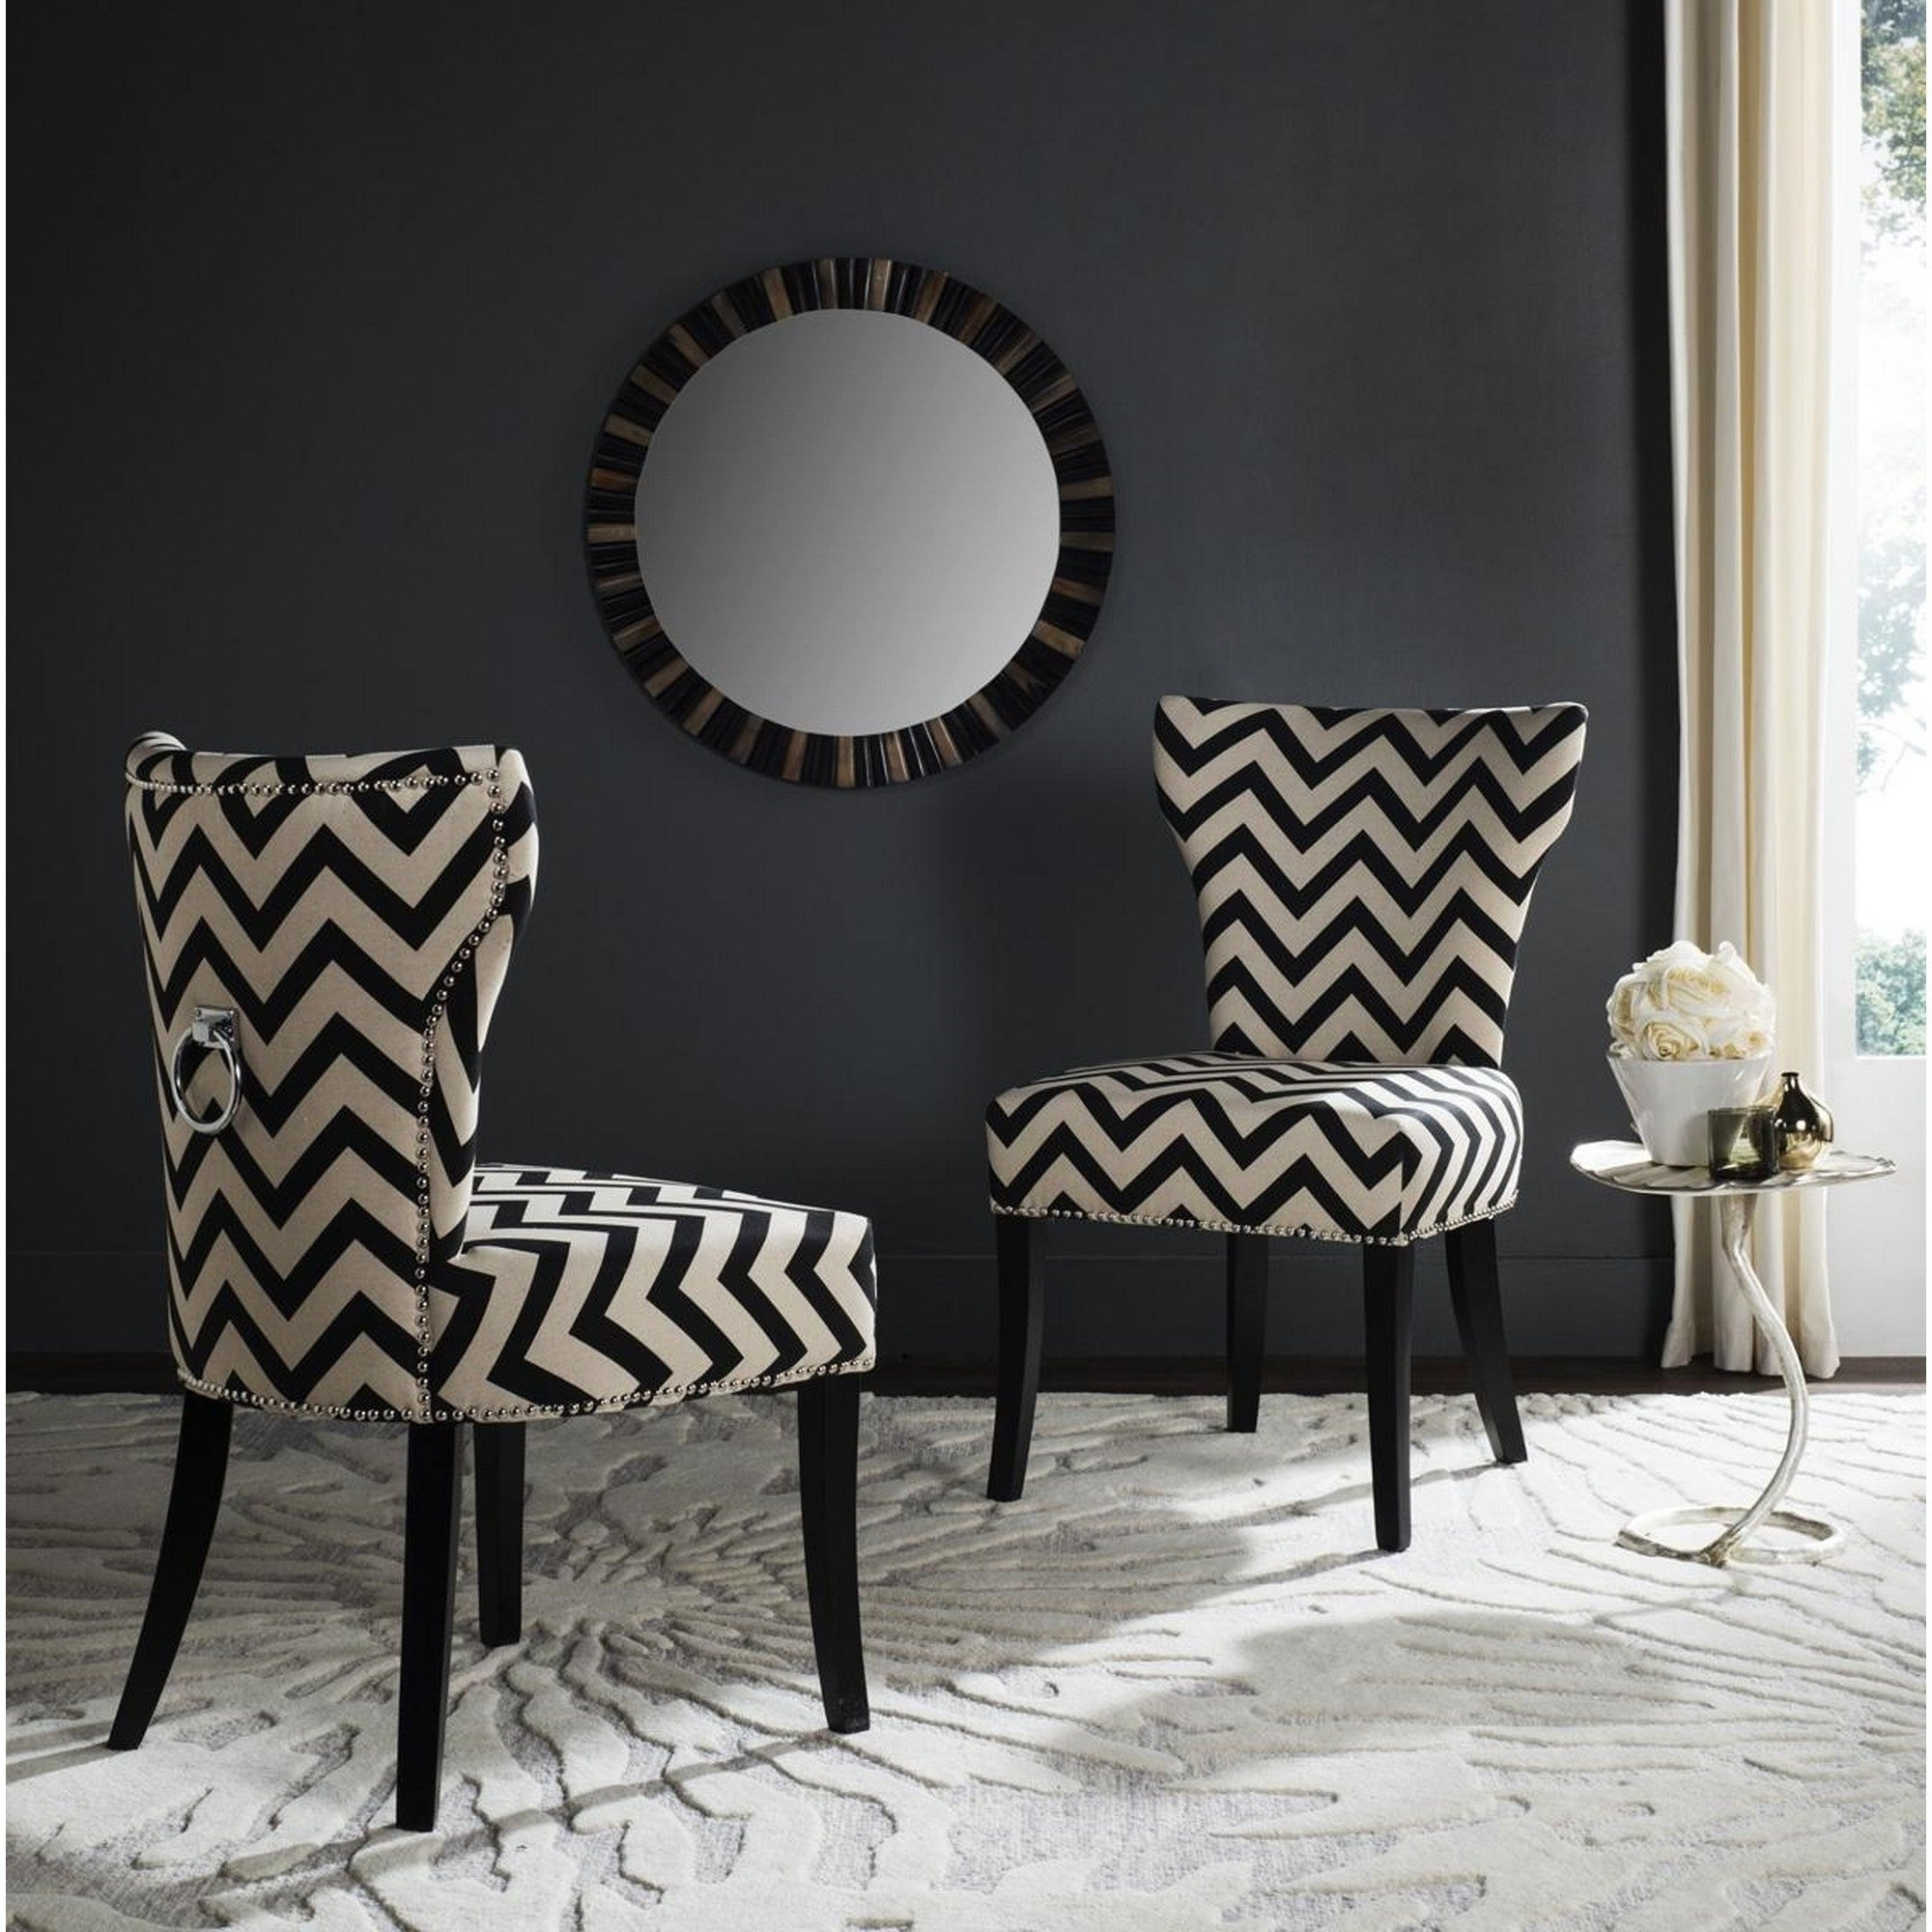 Shop Safavieh En Vogue Dining Jappic Chevron Black/white Ring Dining Regarding 2017 Caira Black 7 Piece Dining Sets With Upholstered Side Chairs (Image 20 of 20)